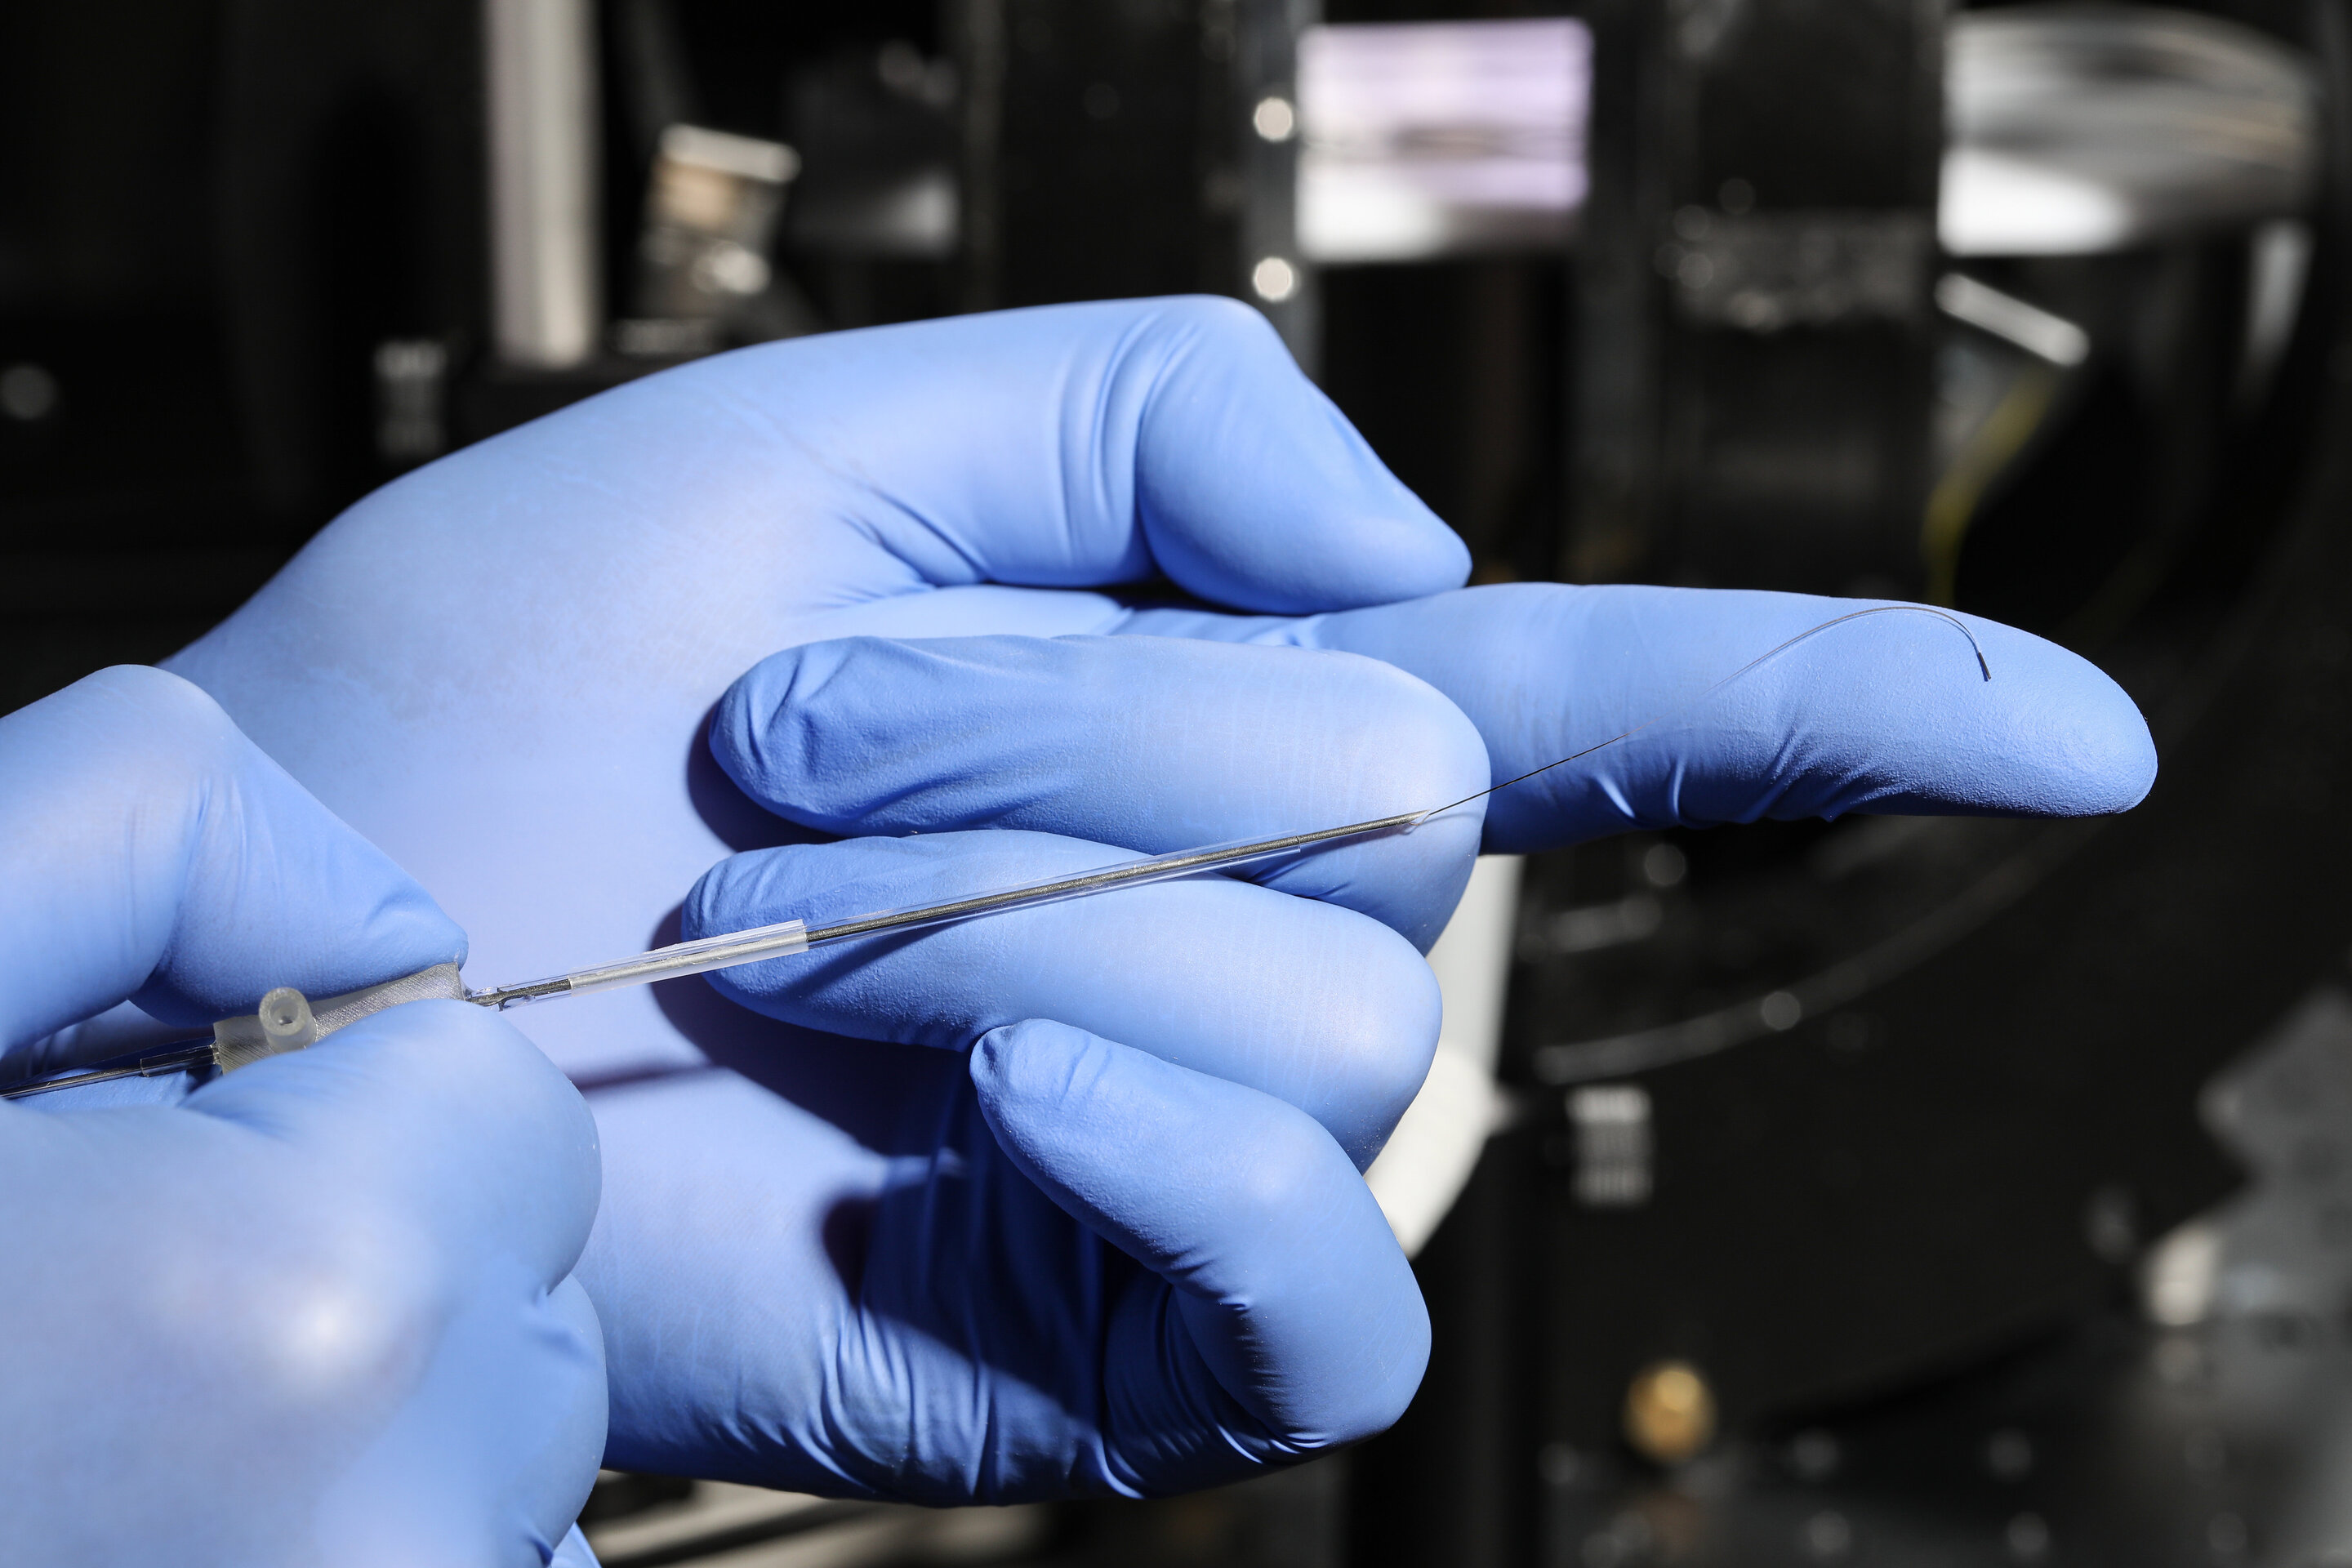 The first endovascular technology that can explore capillaries